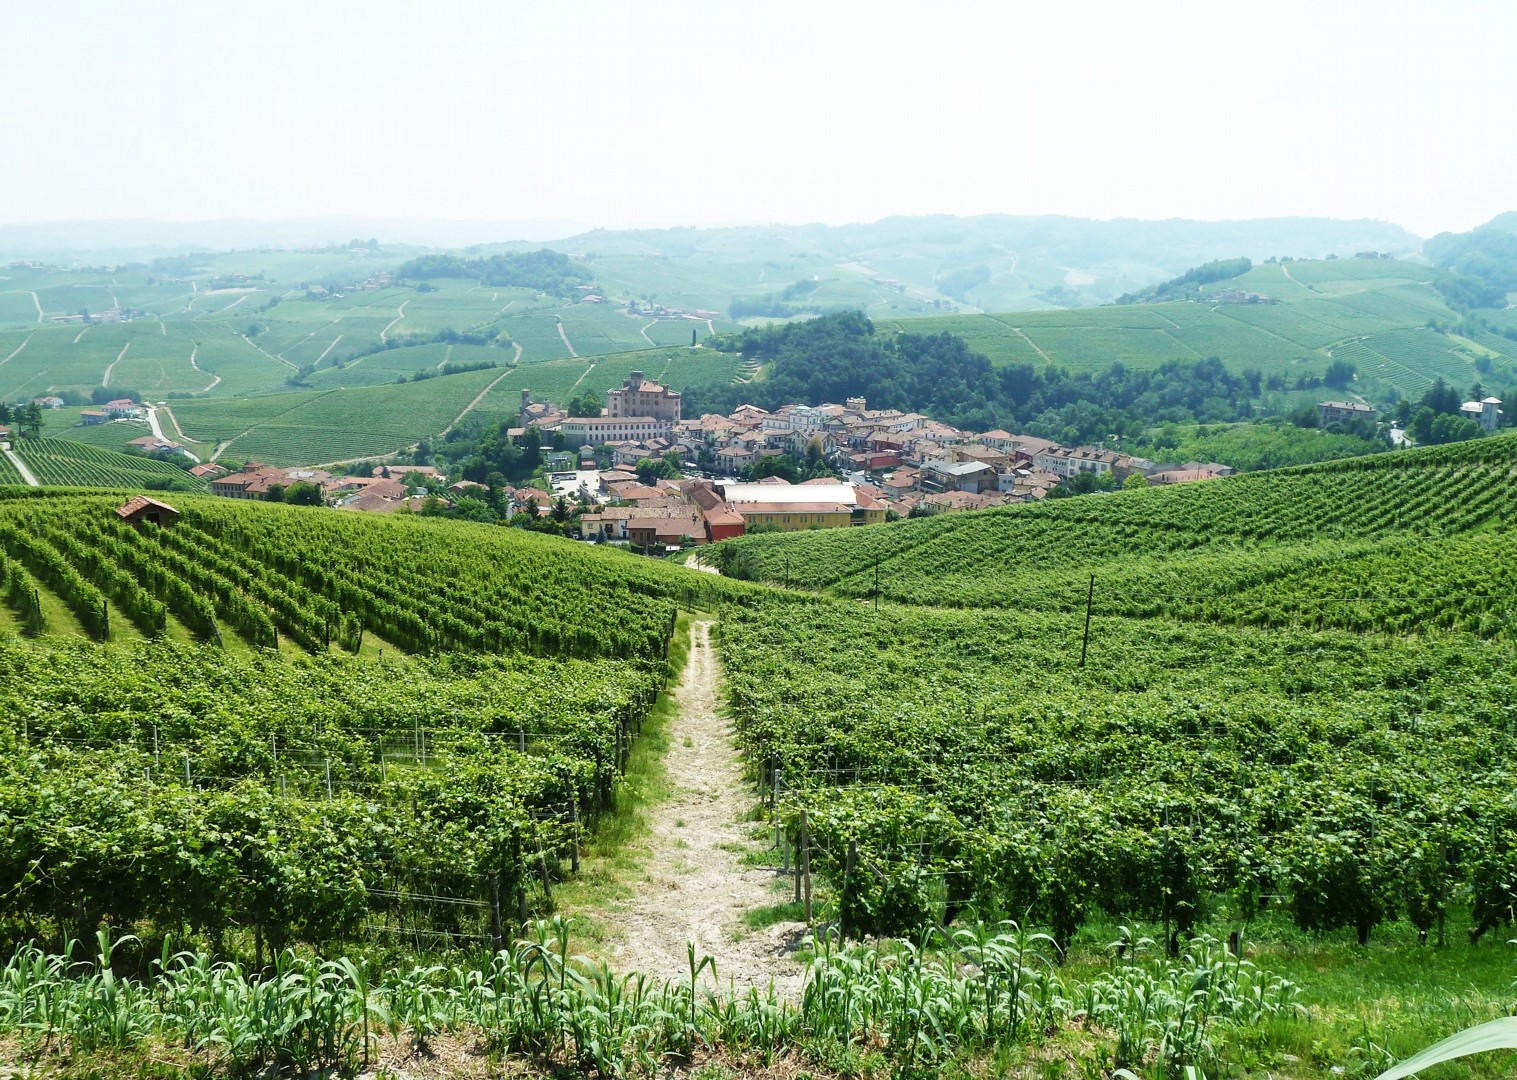 road-cycling-holiday-italy-piemonte.jpg - NEW! Italy - Piemonte - La Strada del Vino - Road Cycling